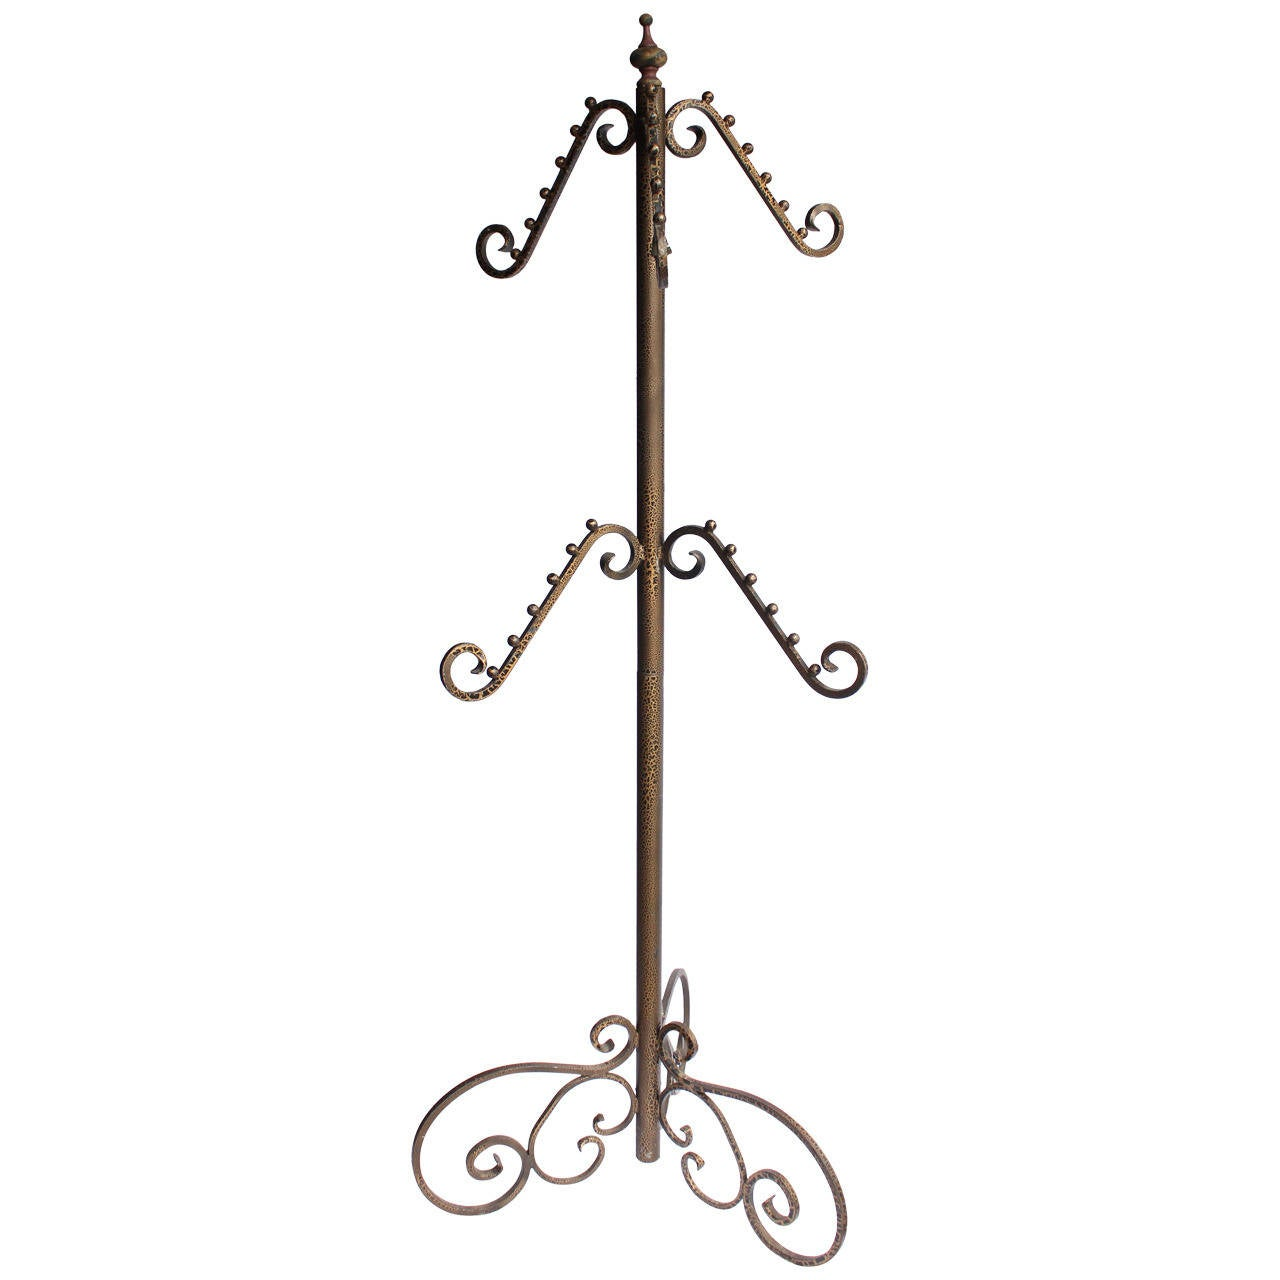 Vintage Metal Department Store Coat Rack